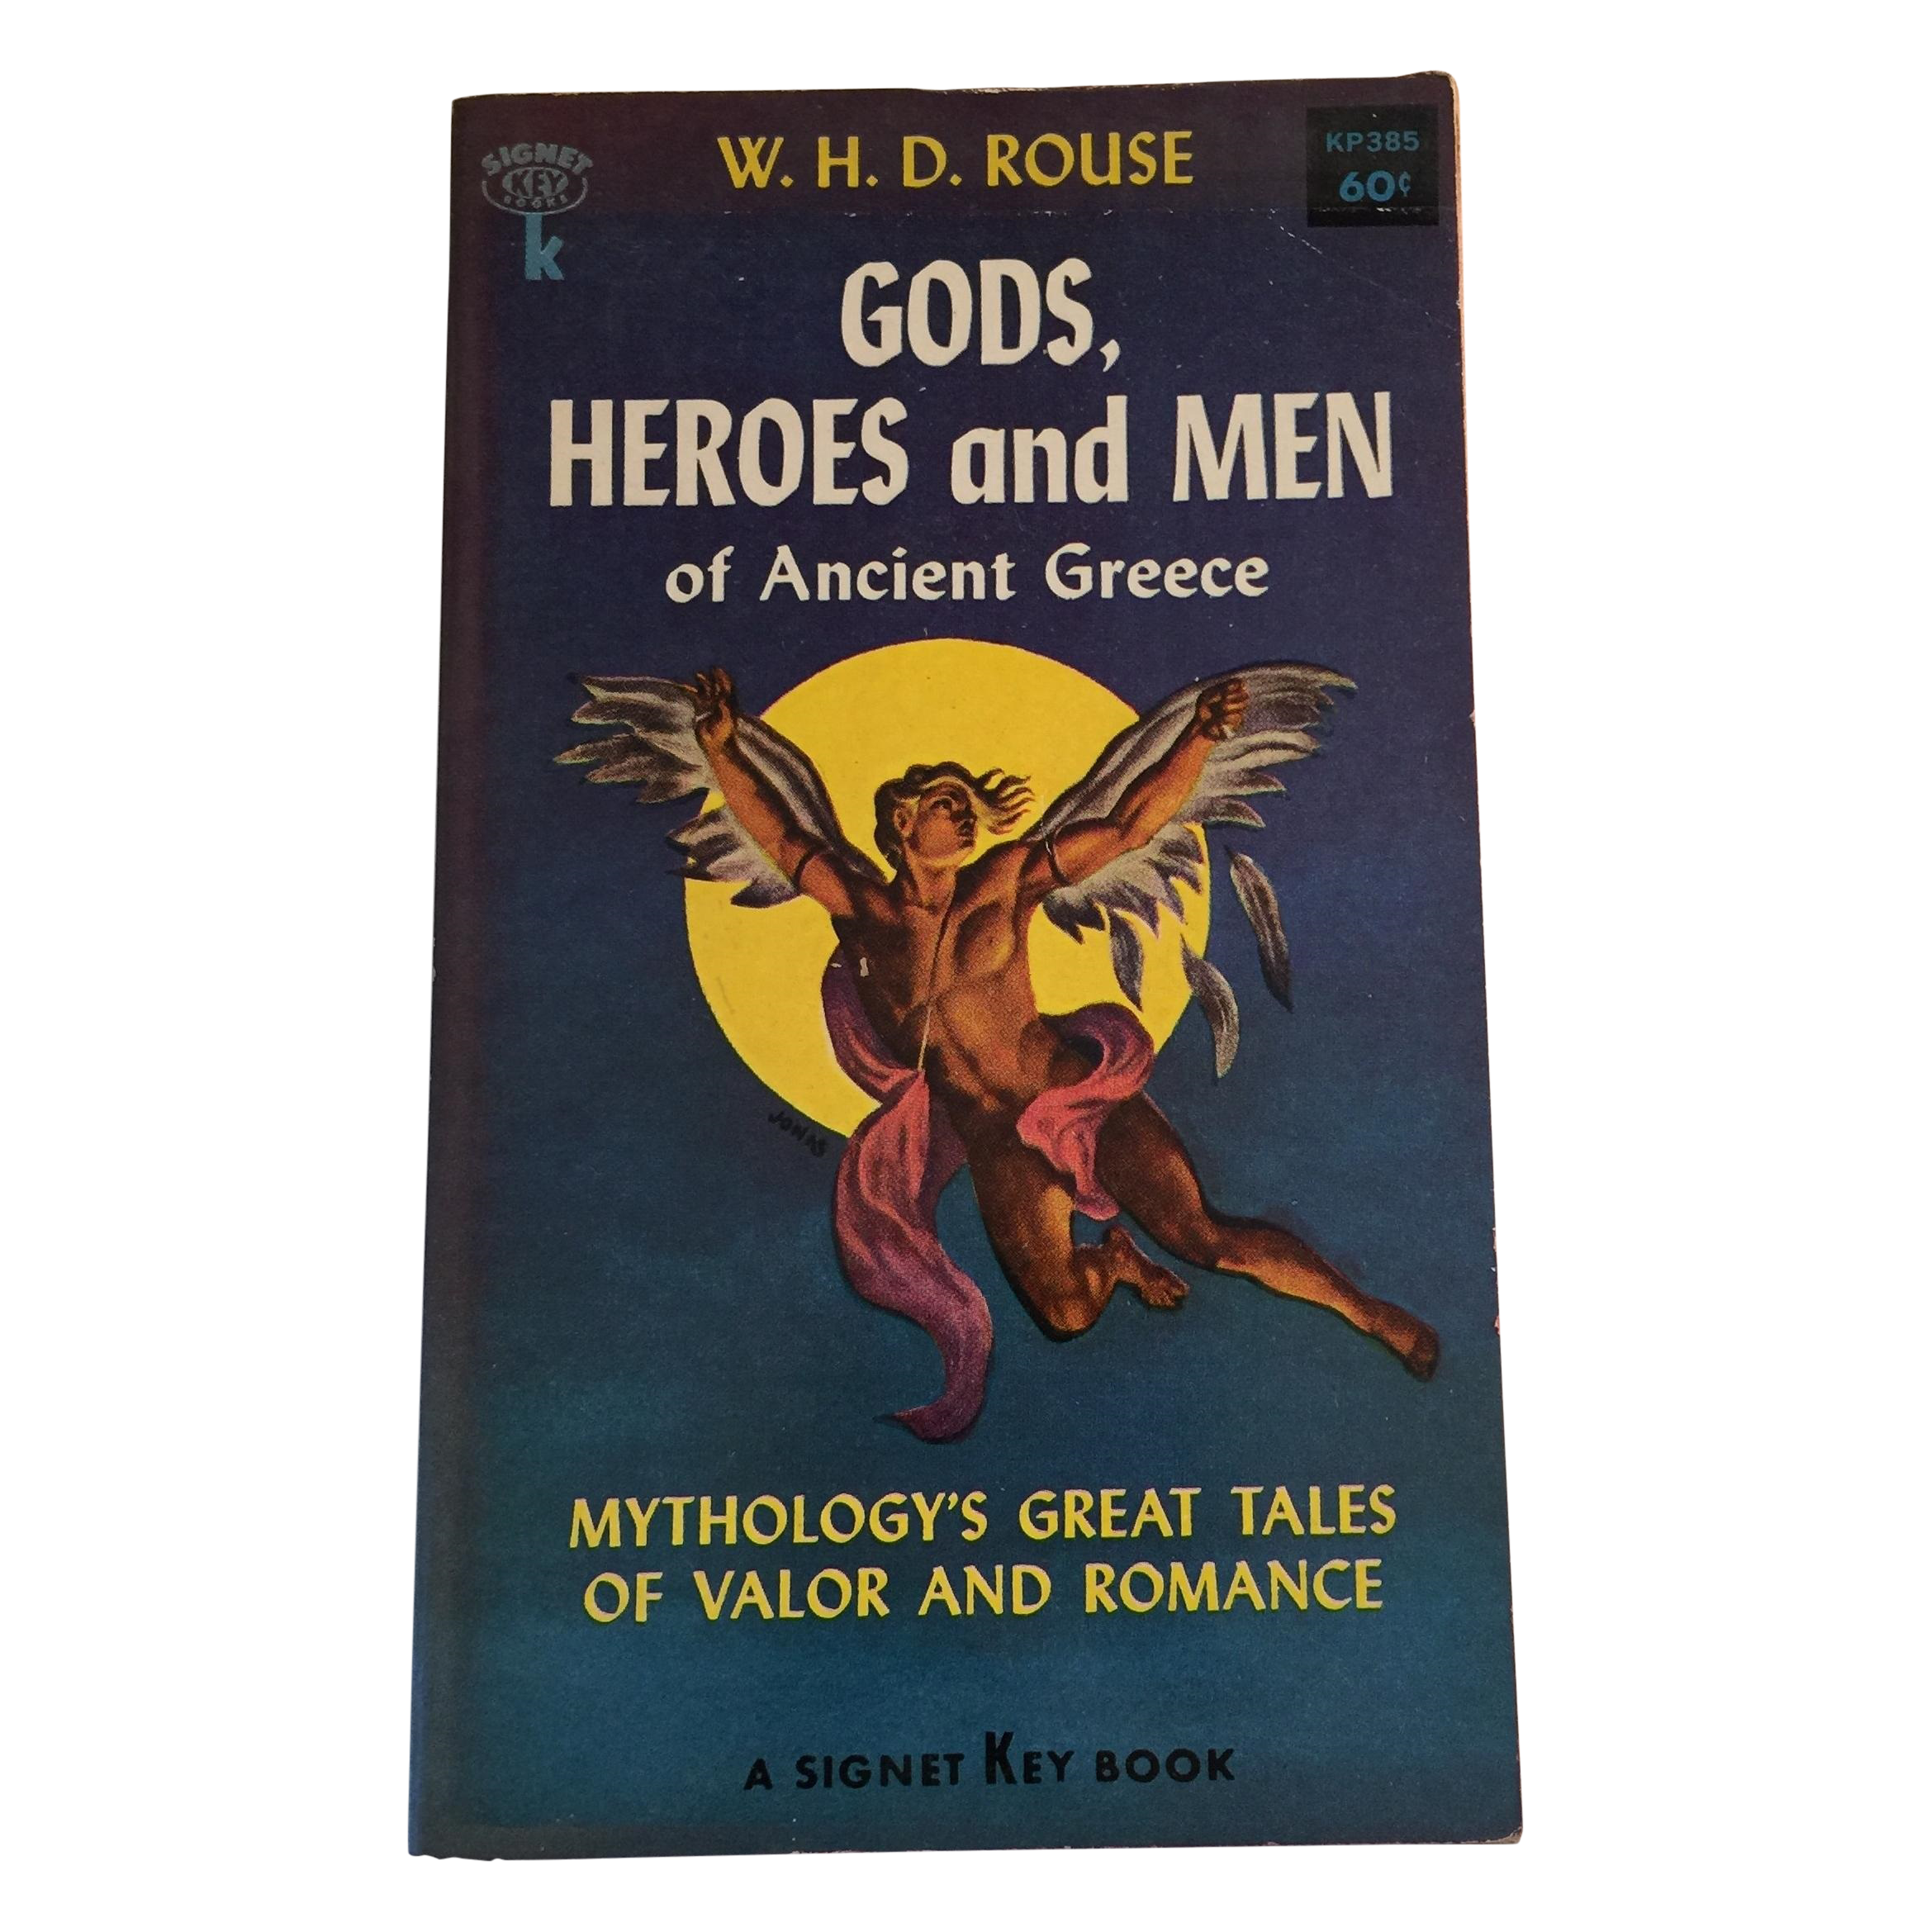 """the aspects of male society in the ancient greek myth In ancient greek mythology, one of the female characters who fits this general   women in a patriarchal society, is that she is """"more than a statue  helen was a  construction of the greek male imagination, and the myths and."""